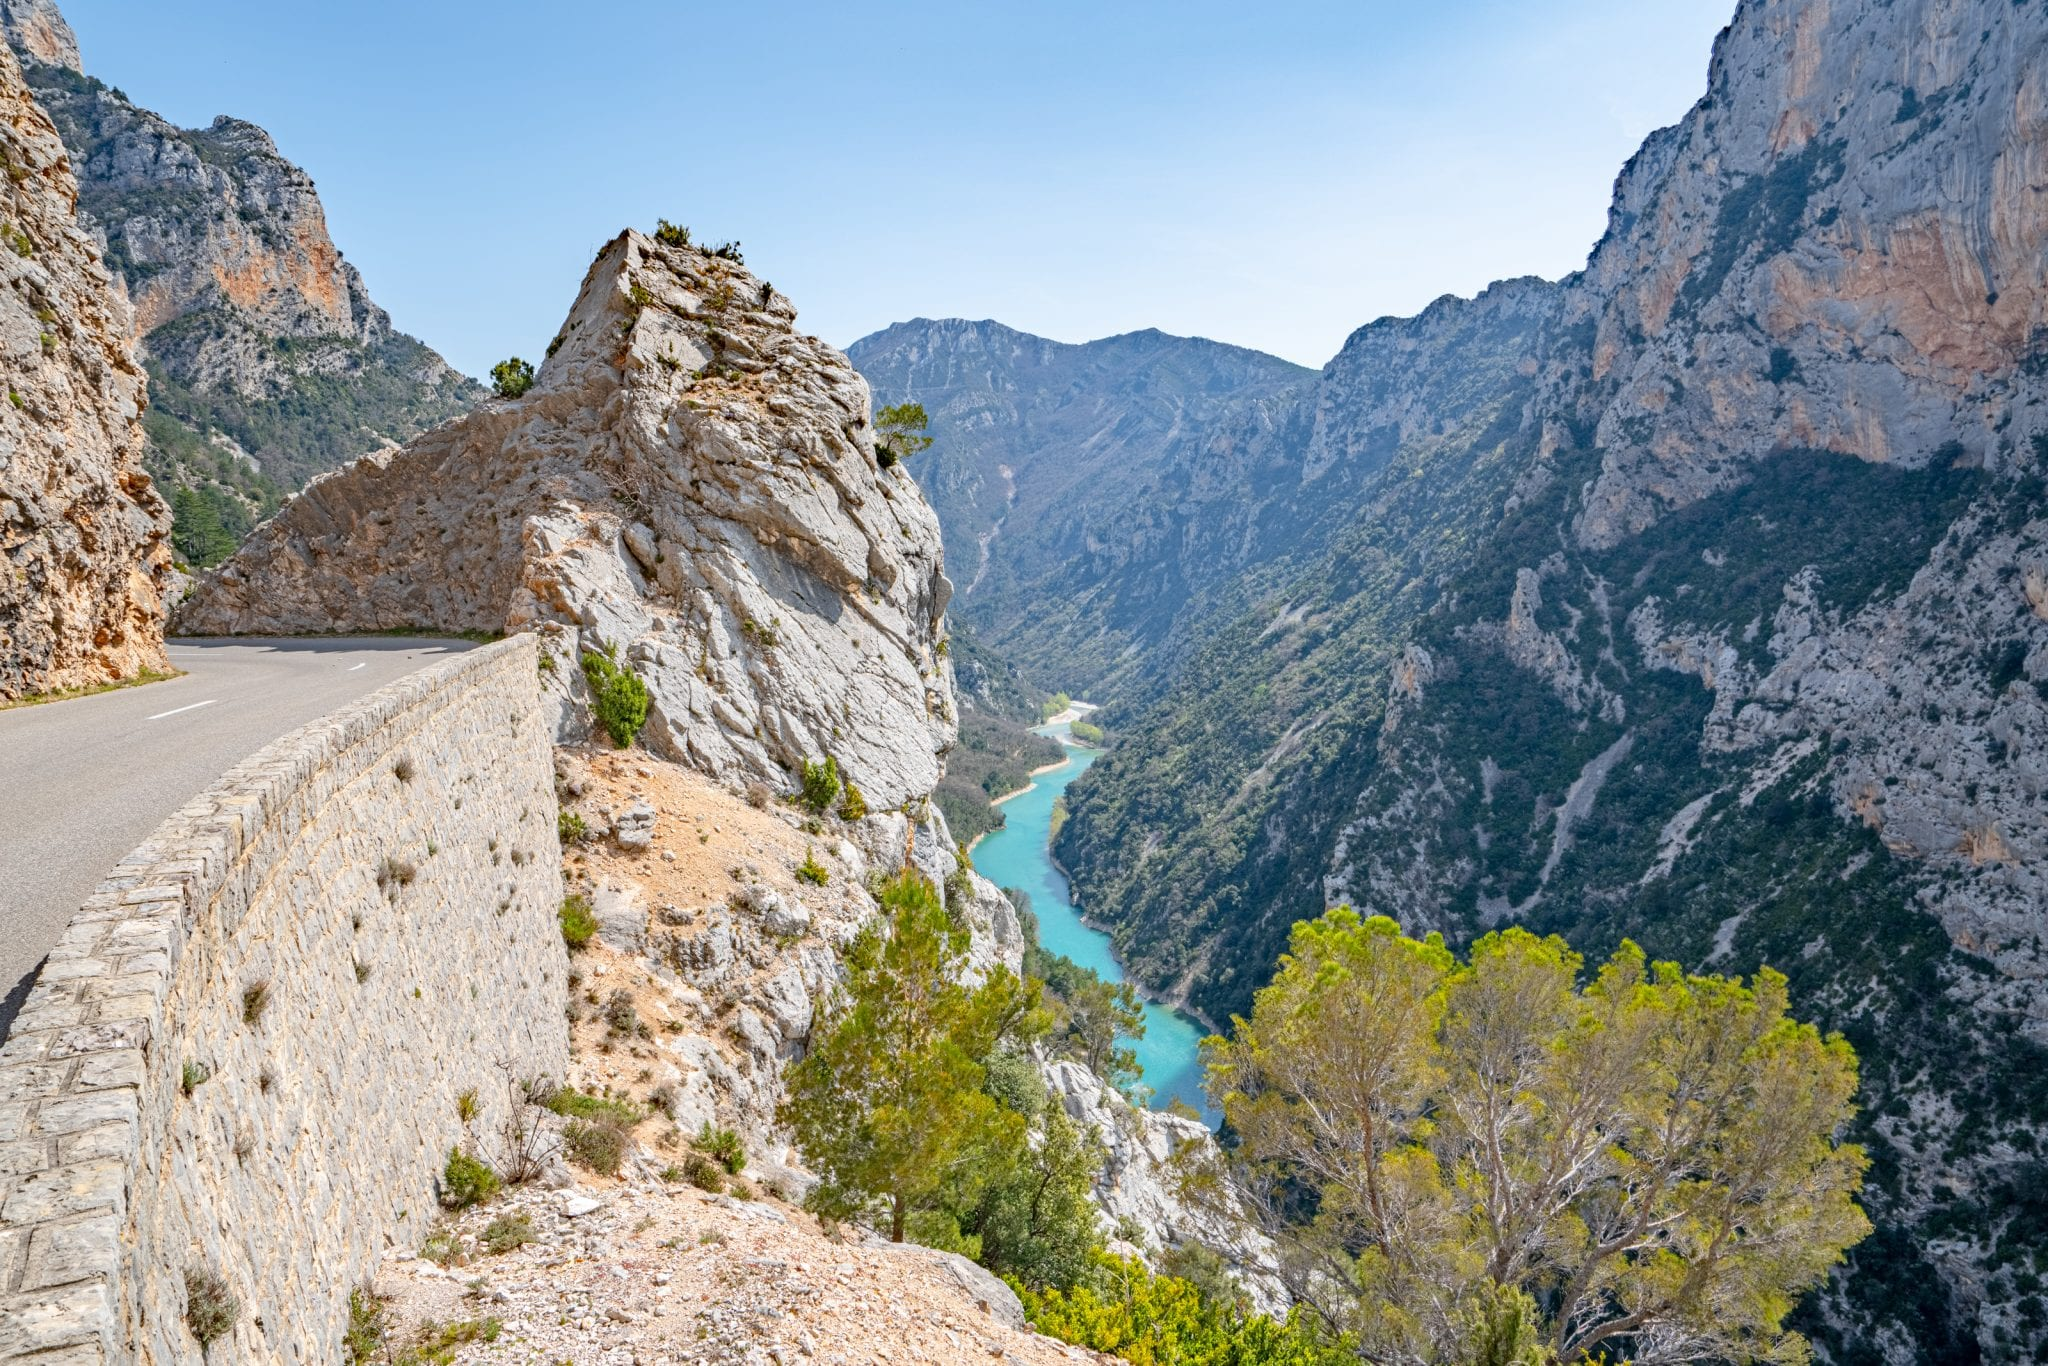 Photo of an empty road on the left, with the Verdon Gorge to the right. The turquoise river of the gorge is visible in the center of the photo. Definitely worth stopping here on a France road trip!